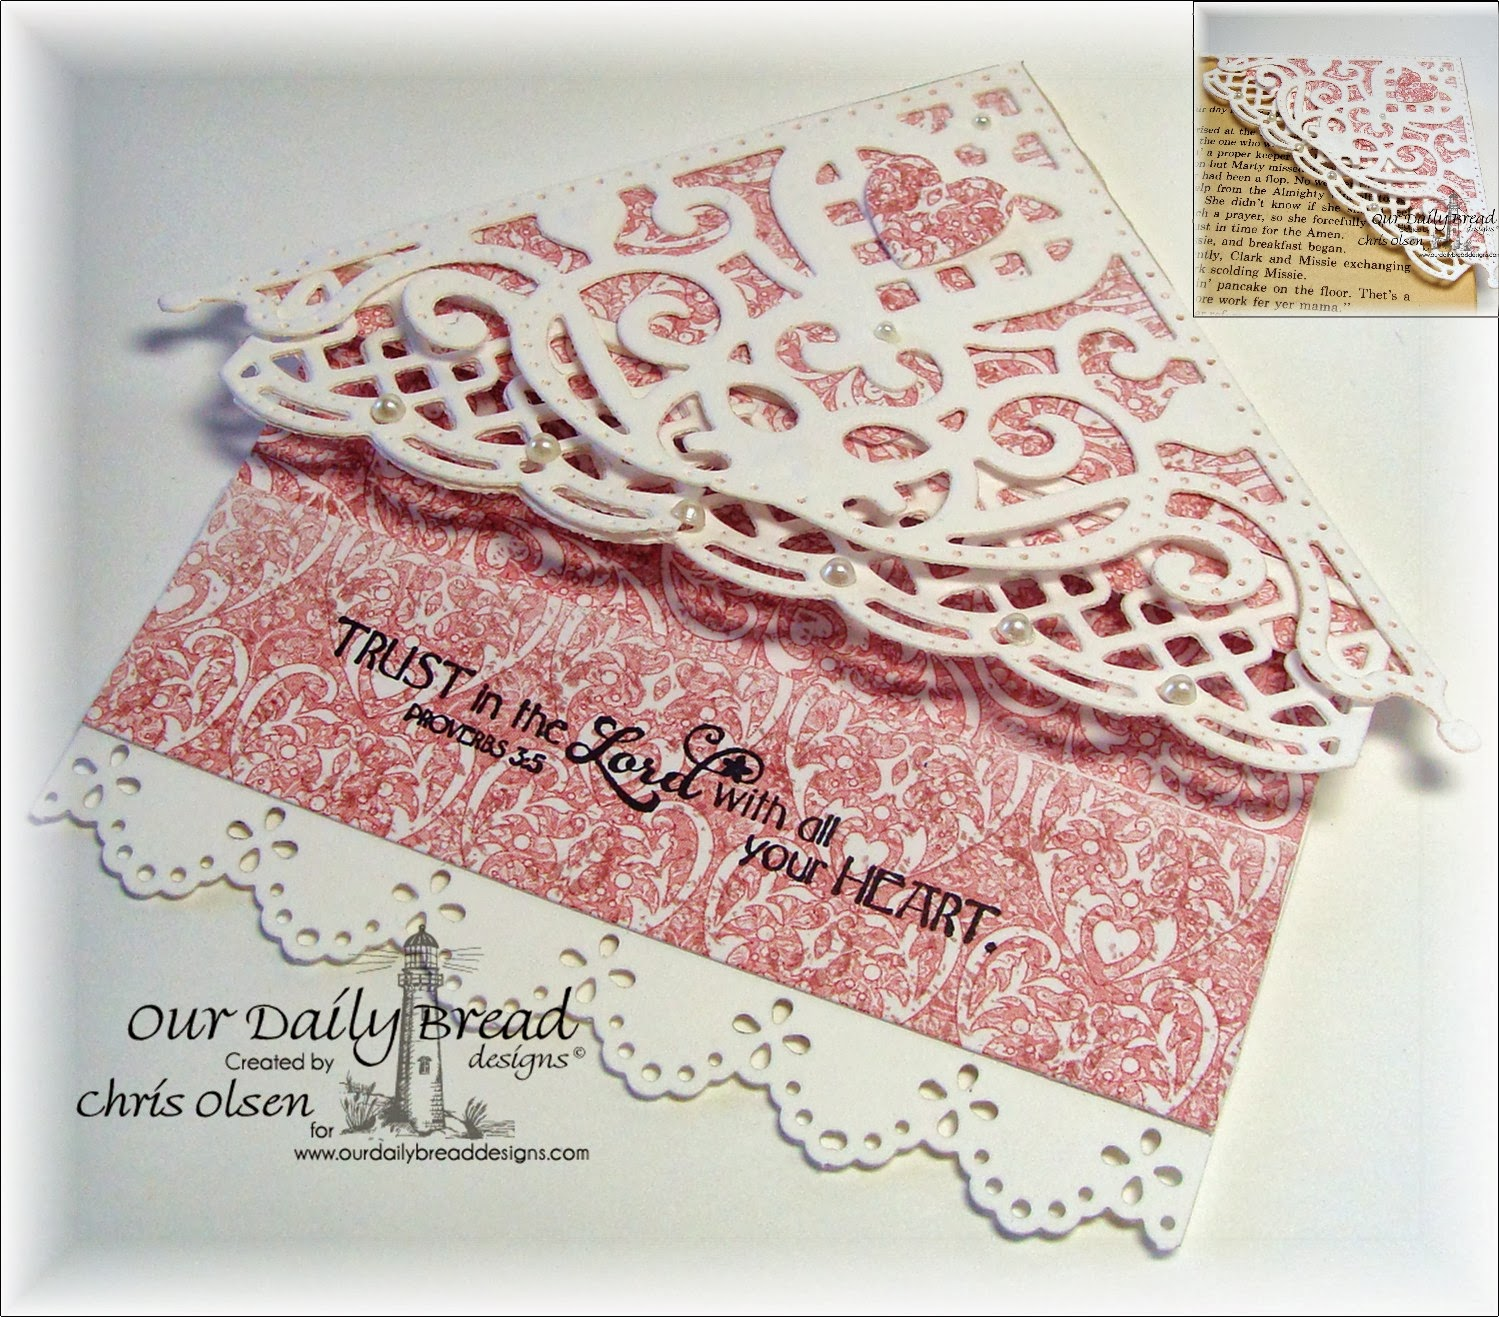 our daily bread designs, ODBD Decorative Corners, Ornate Hearts, Beautiful Borders, Clean Heart, Heart and Soul Collection, Chris Olsen